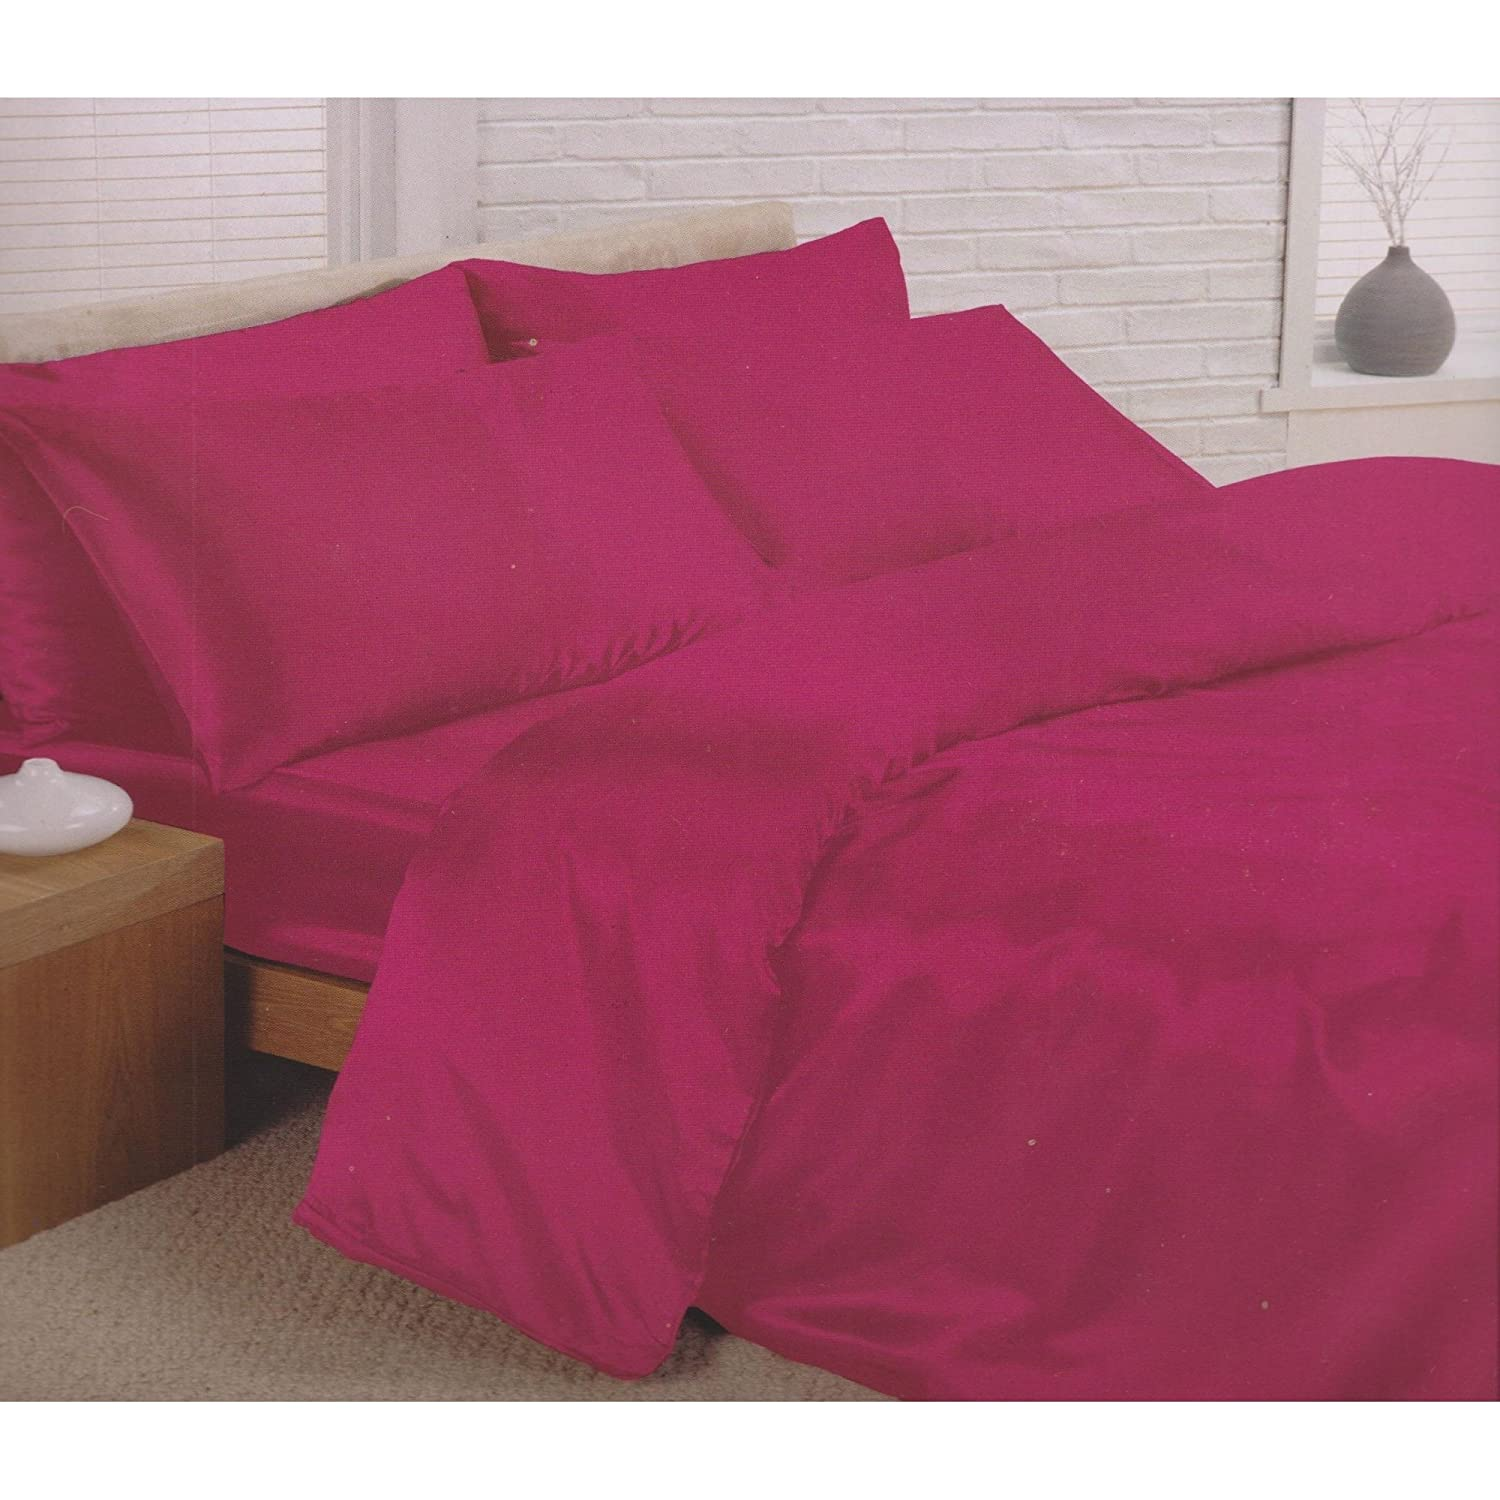 Charisma Satin Bedding Set (Duvet Cover, Fitted Sheet & Pillowcases) (Single) (Cerise) Universal Textiles UTMS169_25